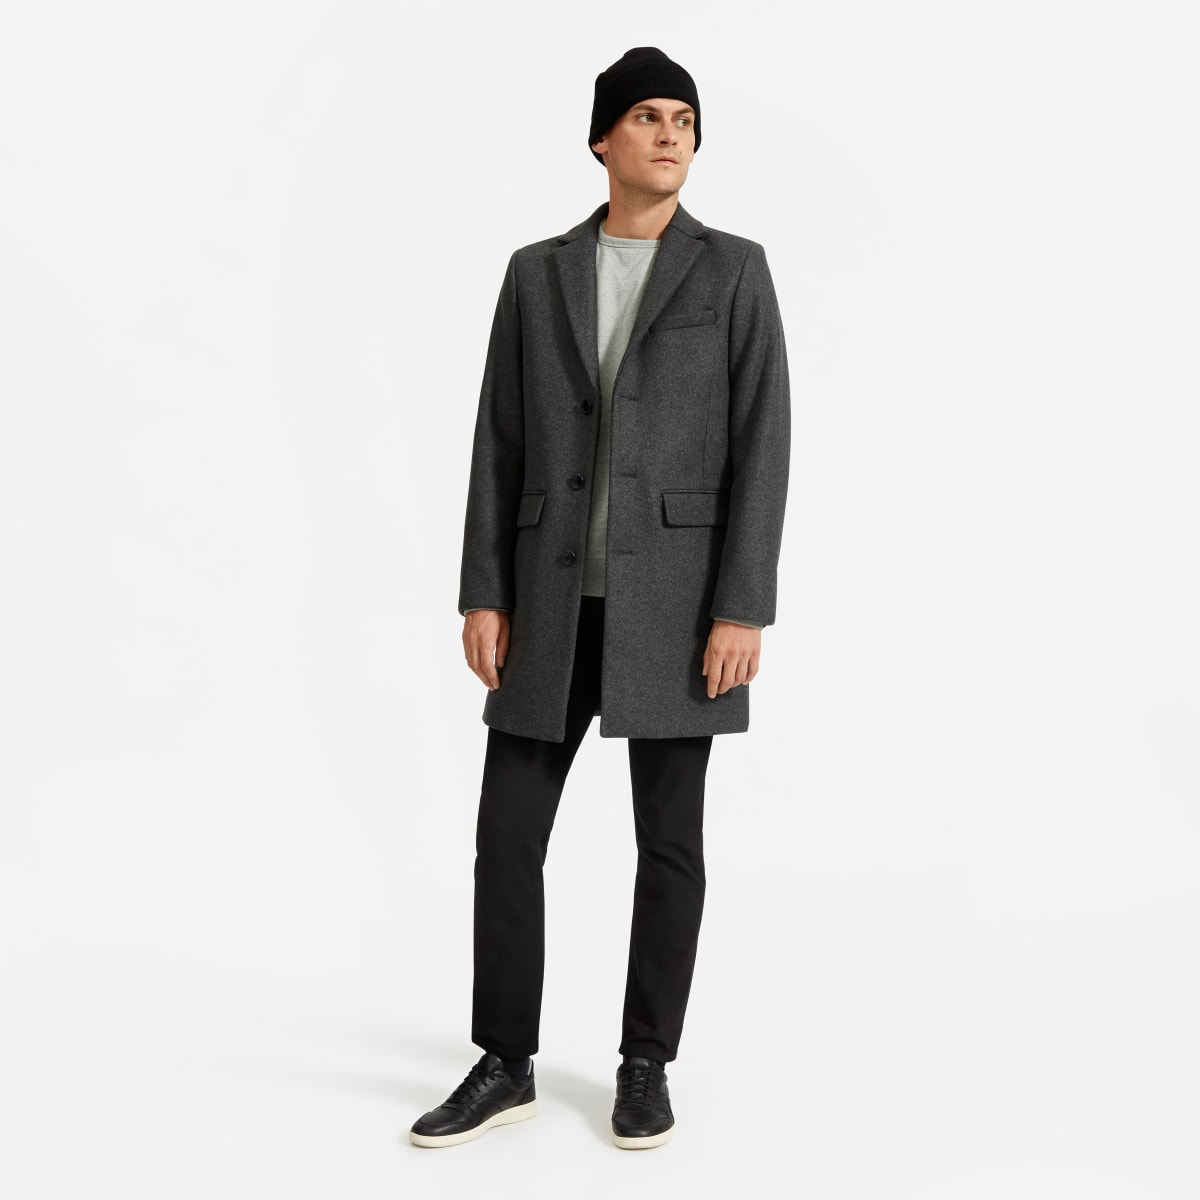 The Re Wool Overcoat by Everlane